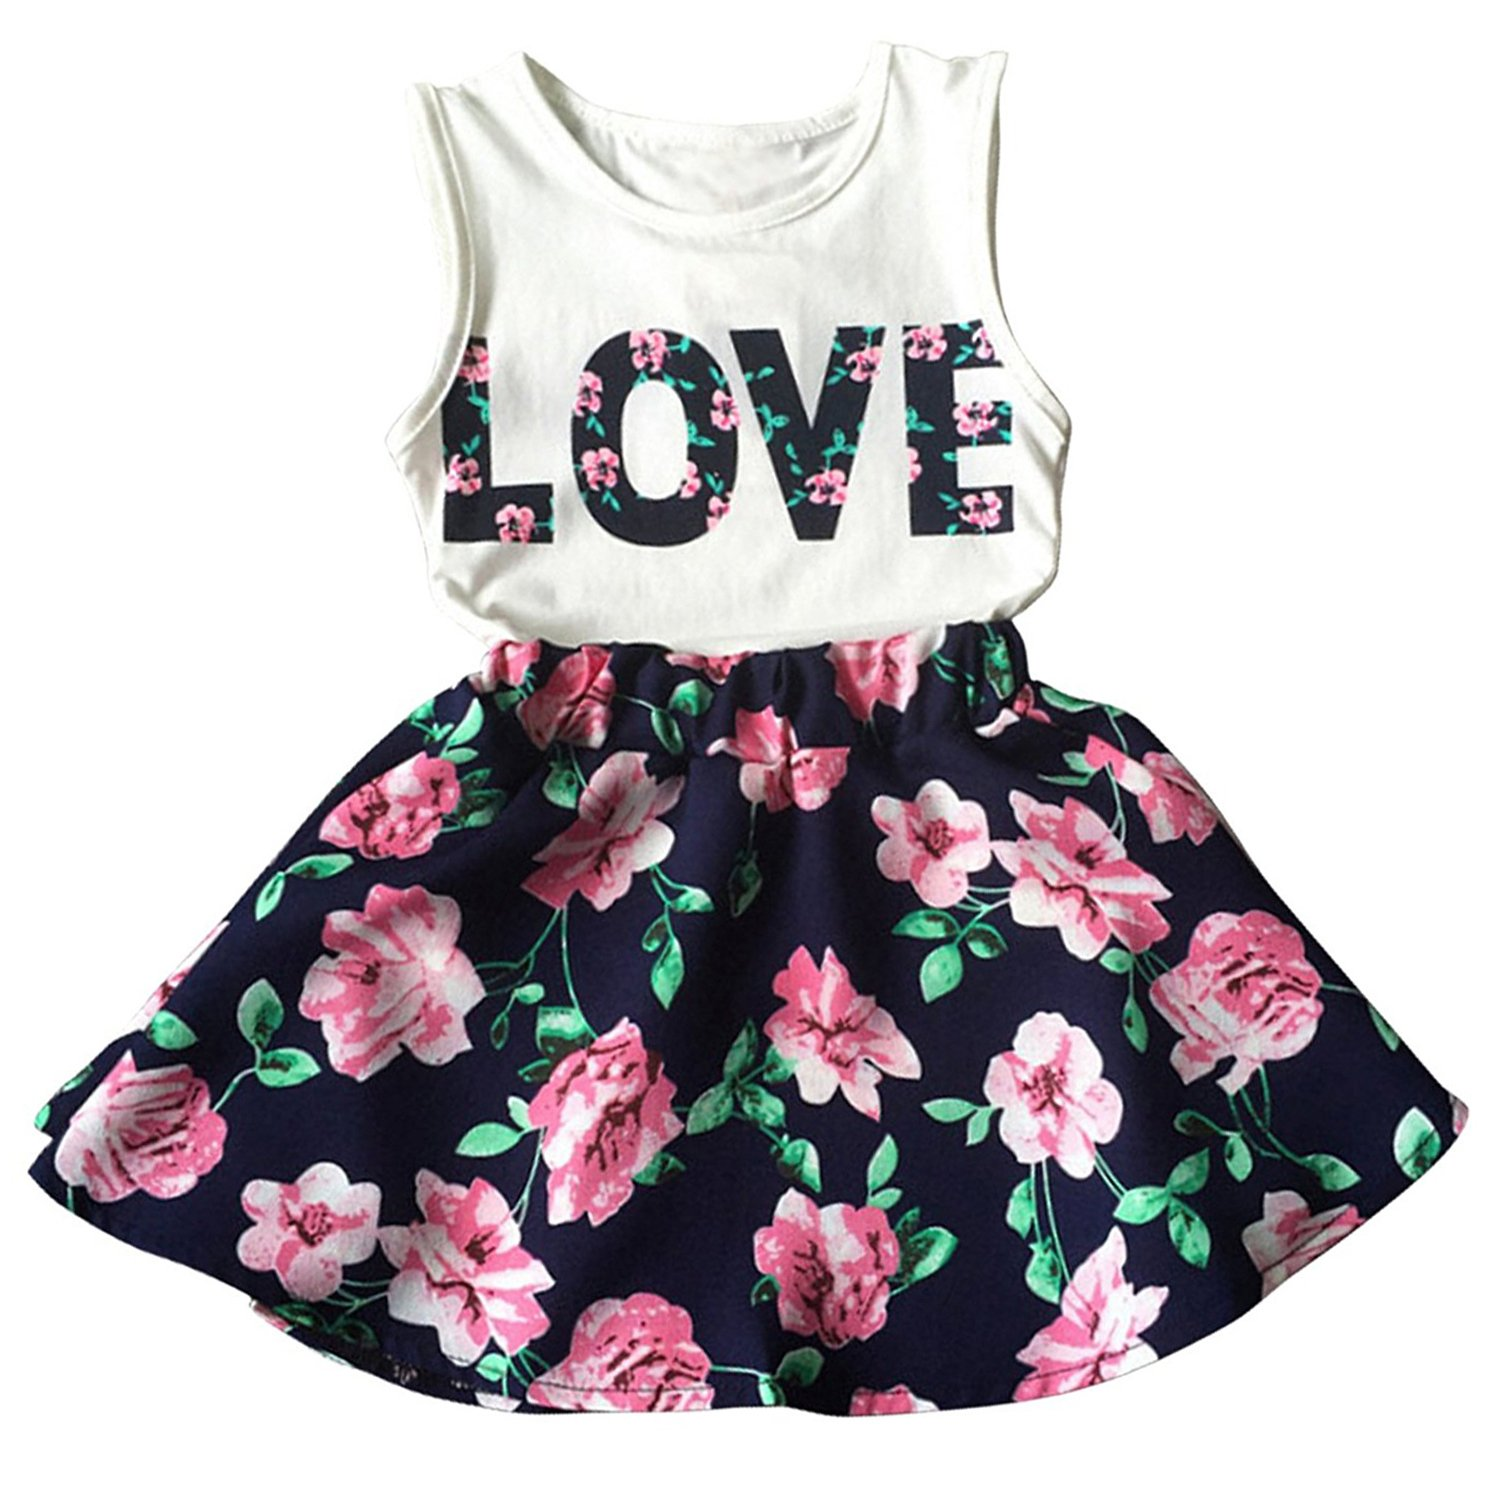 Avidqueen Little Girls Letter Love Flower Clothing Sets Summer Top and Skirt Kids 2pcs Outfits (White+Navy, 3T(3-4Years))